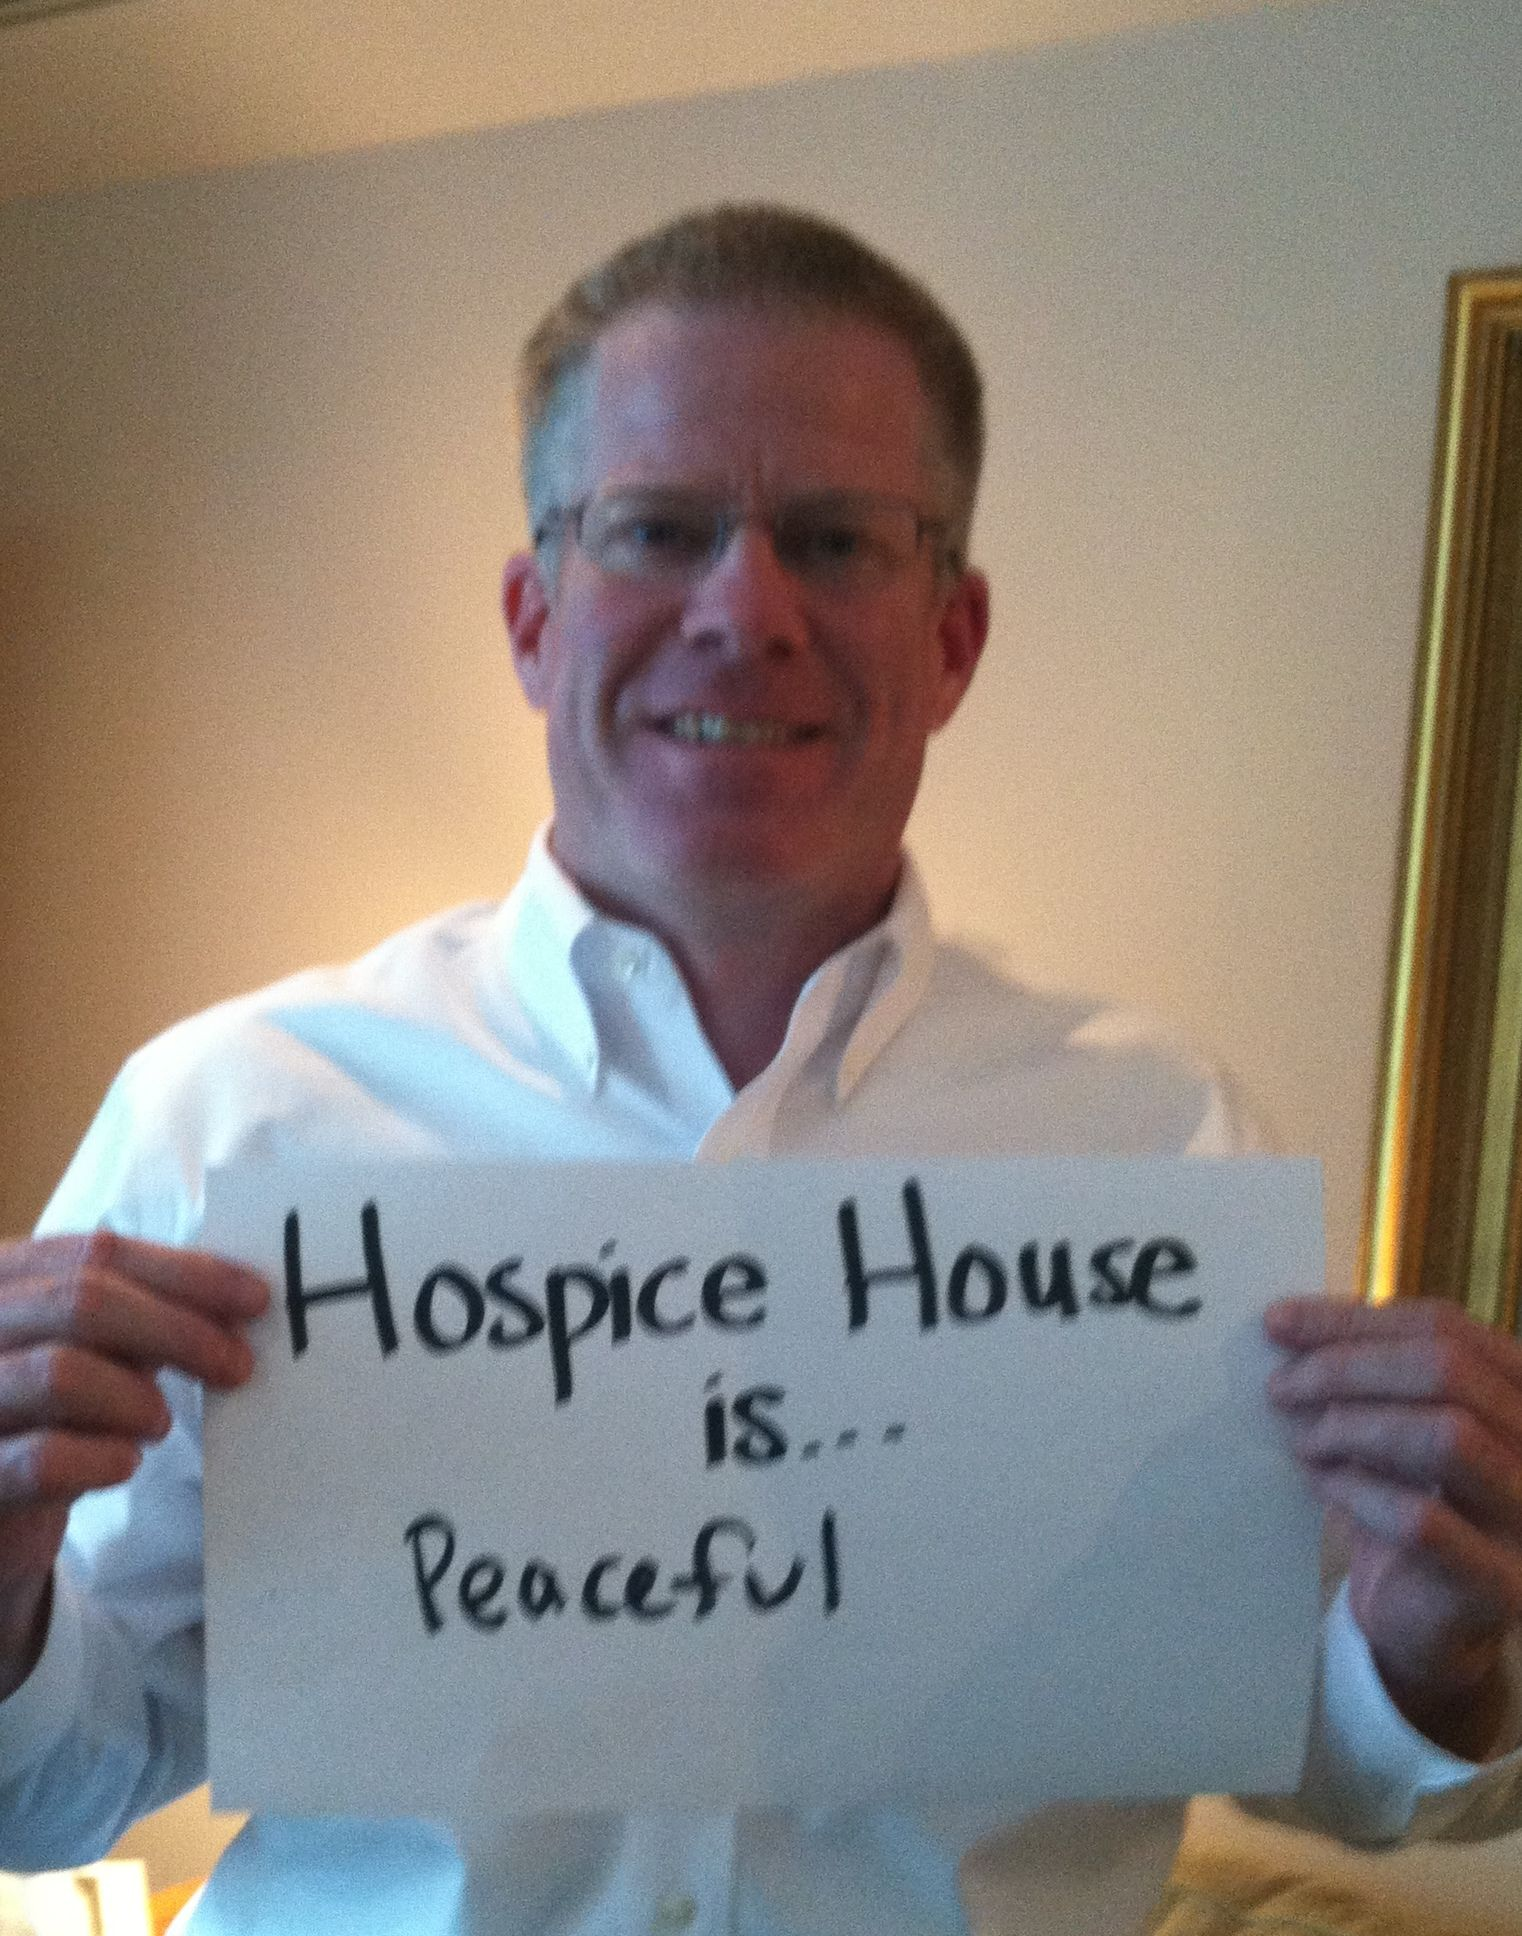 Pin on hospice house is